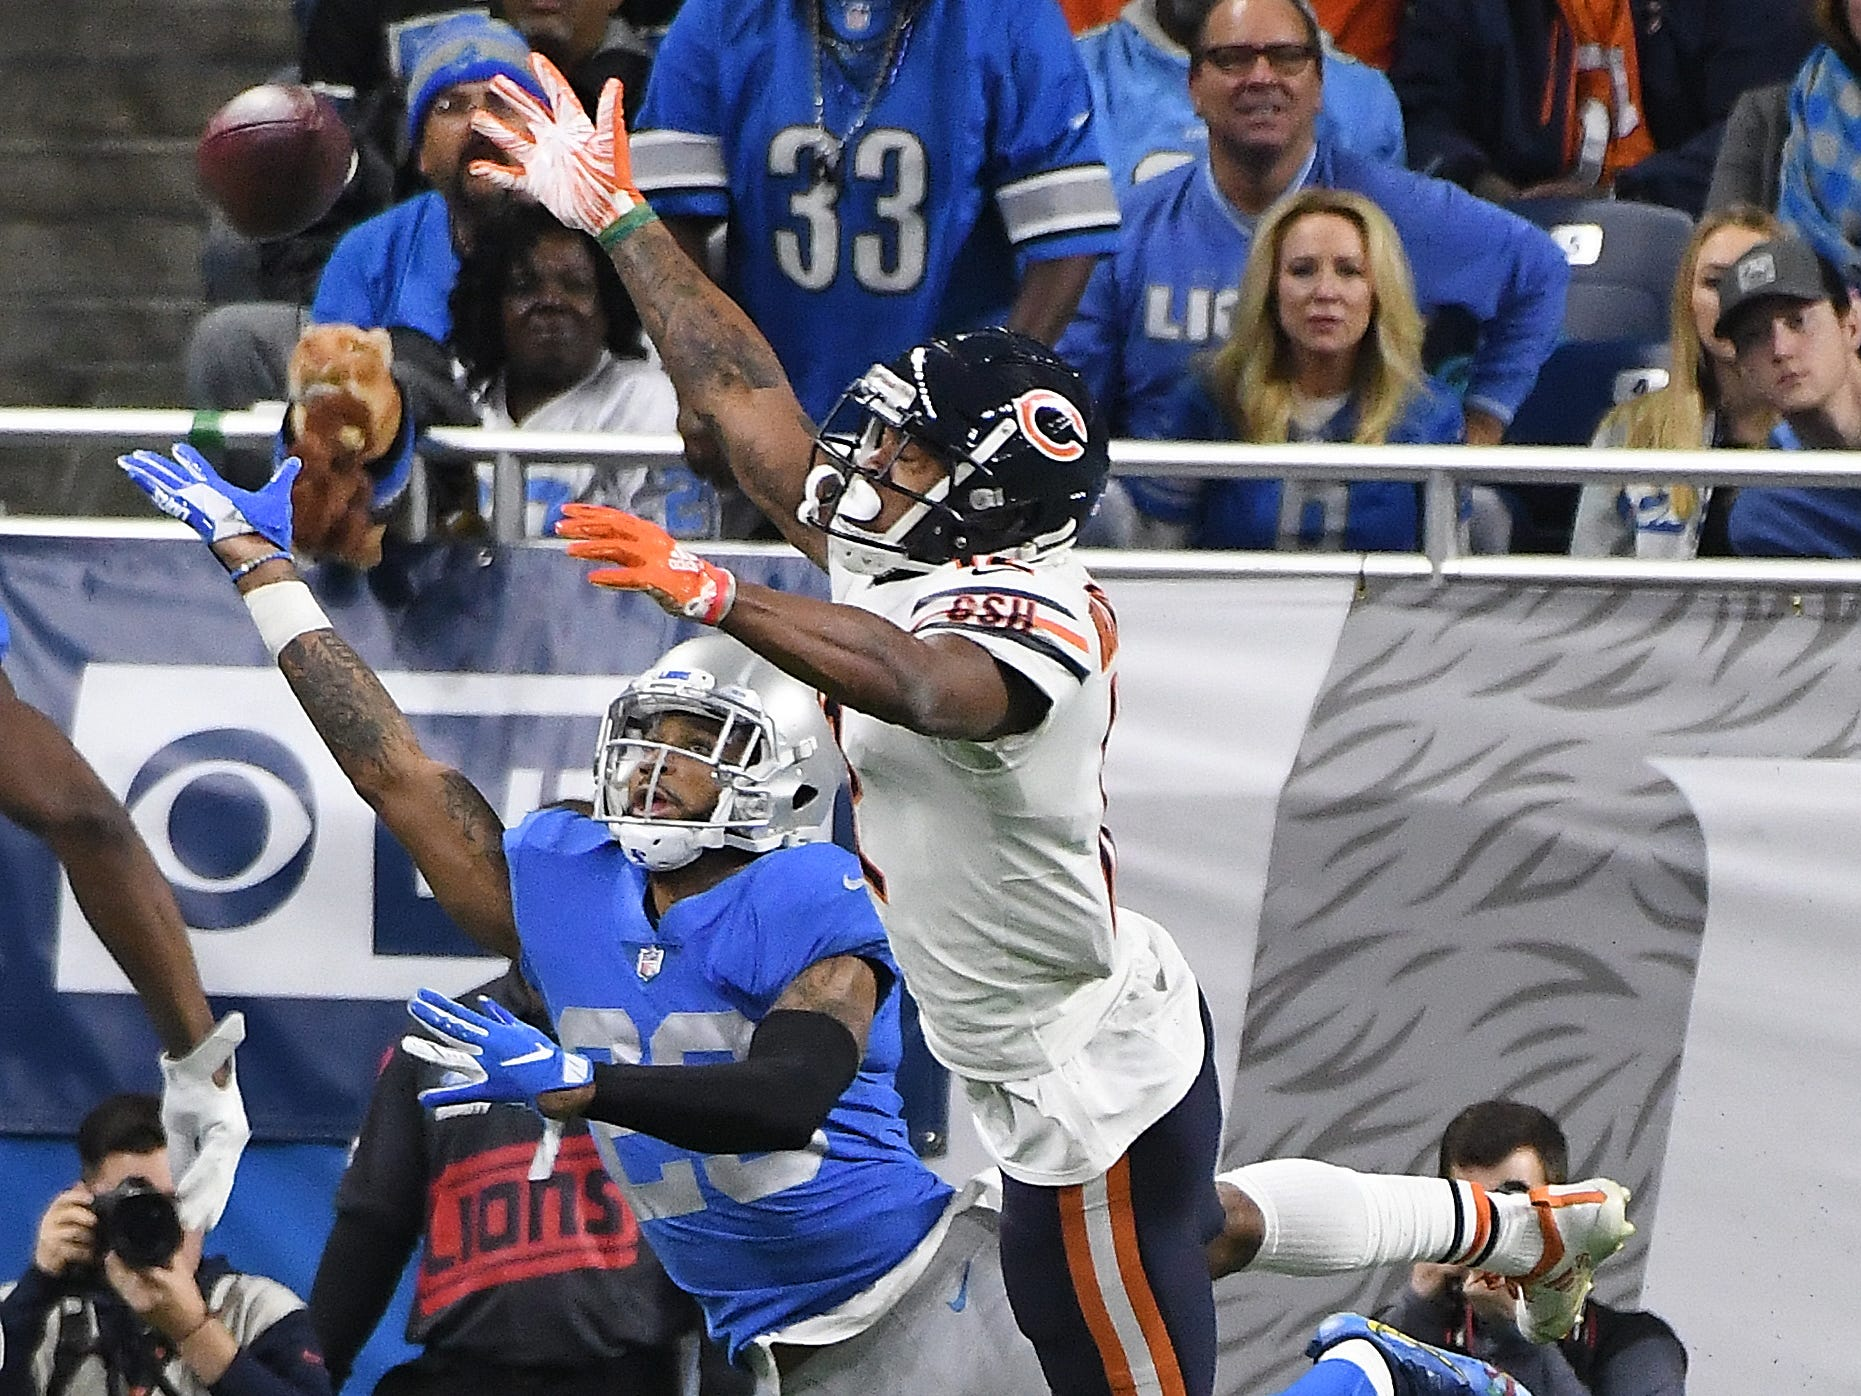 Lions' Darius Slay is on defense against Bears' Allen Robinson II who can't pull in a long pass in the end zone in the second quarter. Bears win, 23-16.